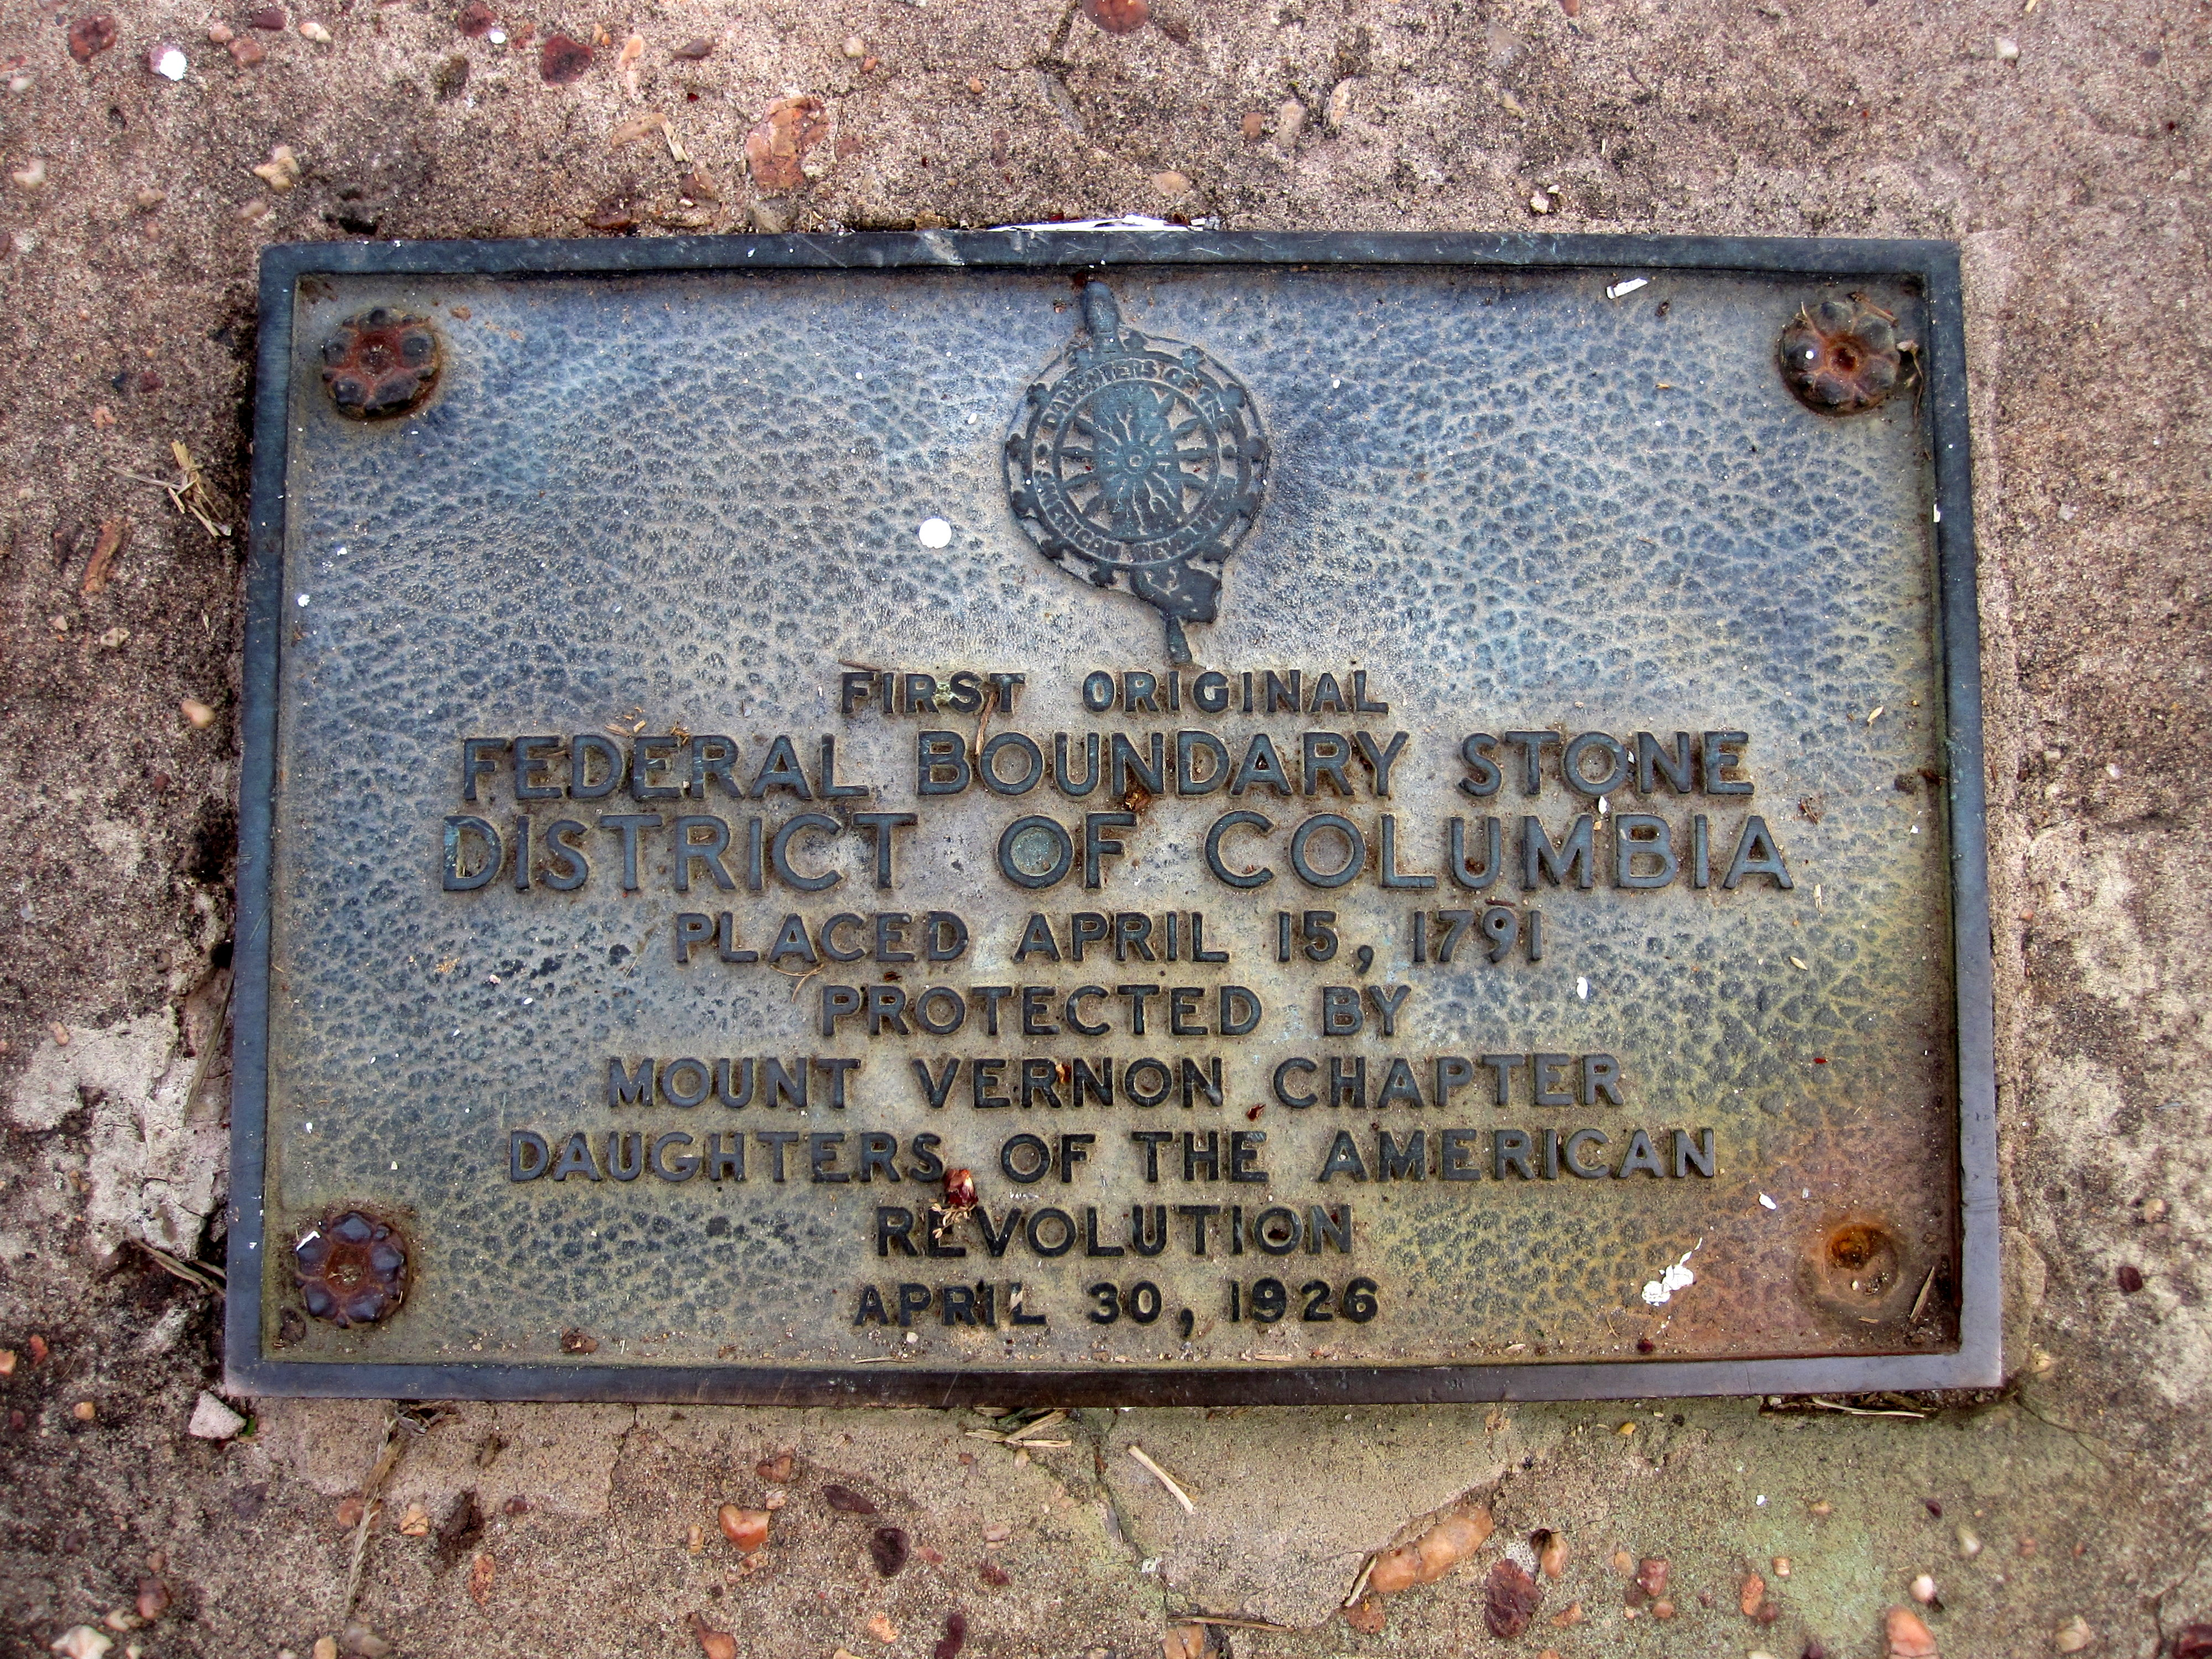 South Cornerstone plaque. Image by Something Original on Wikimedia Commons (CC BY-SA 3.0)